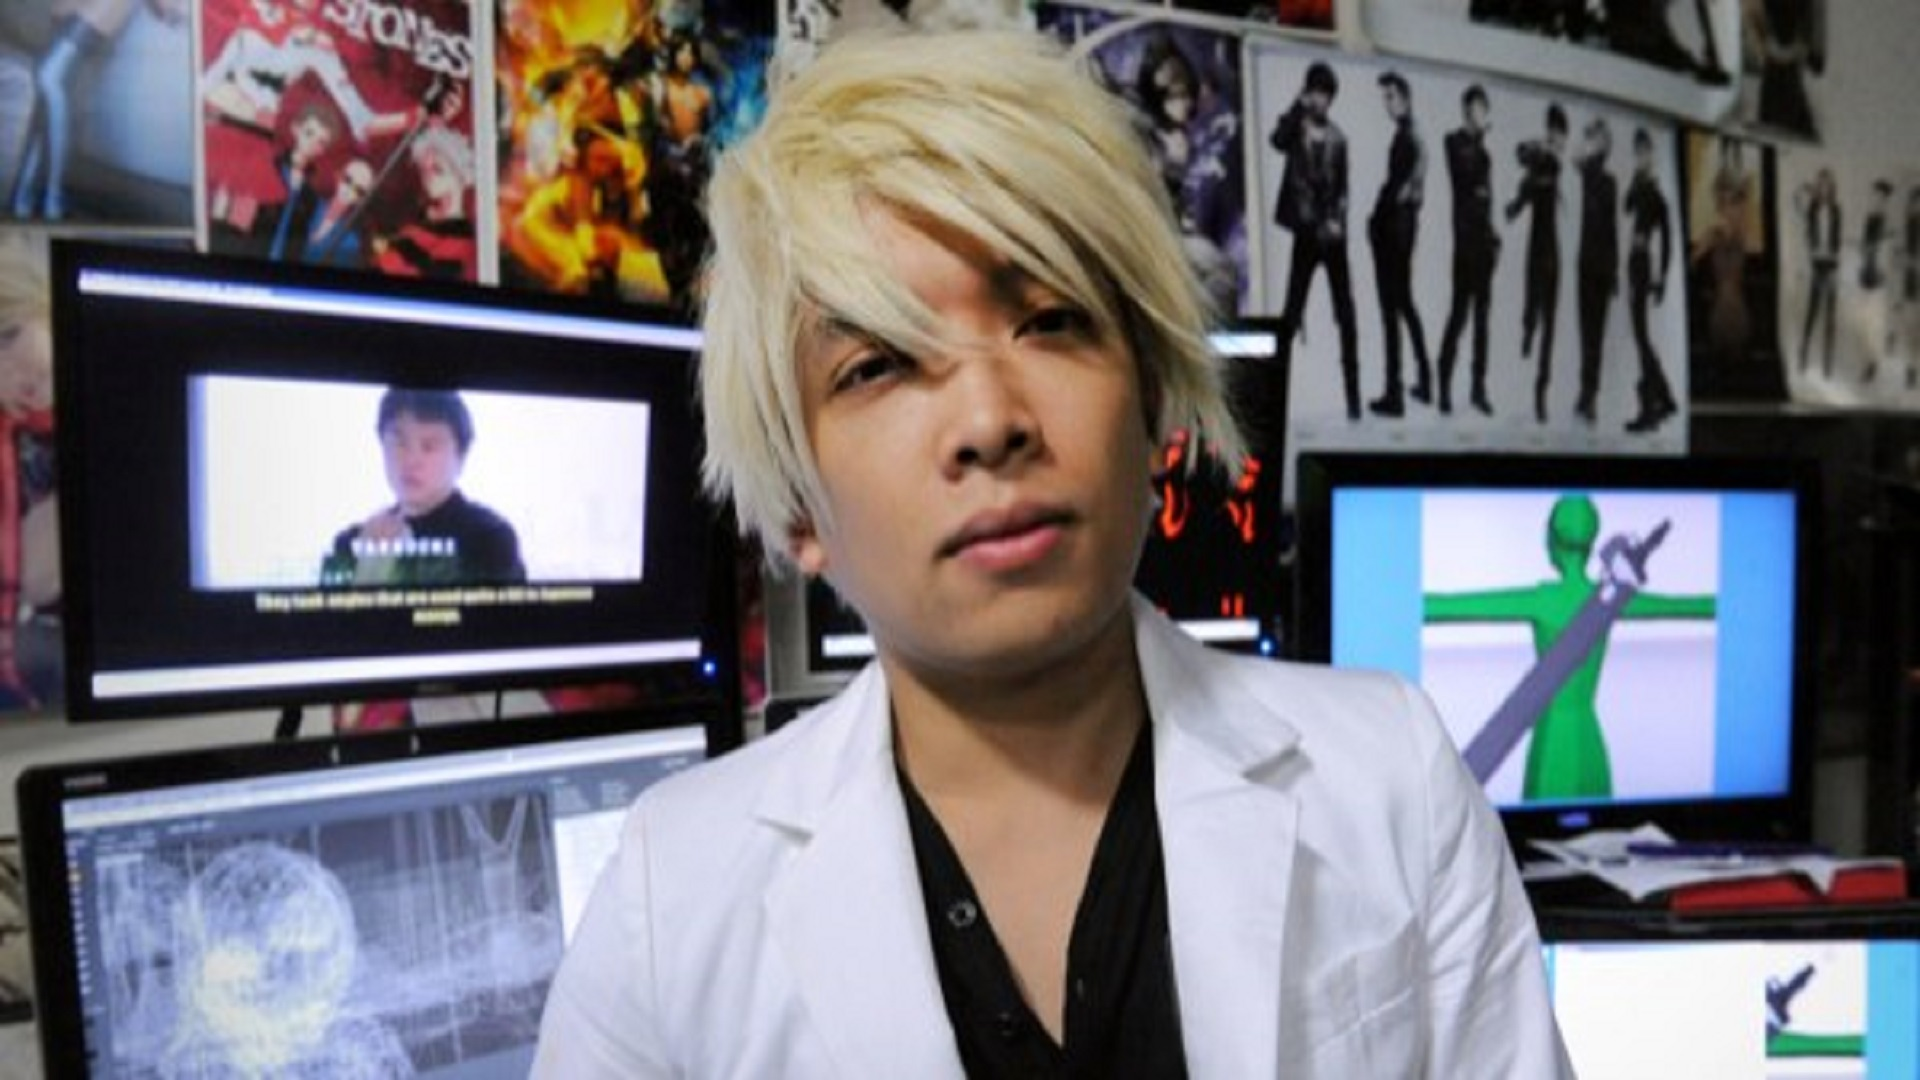 Monty Oum of Rooster Teeth on July 12, 2013